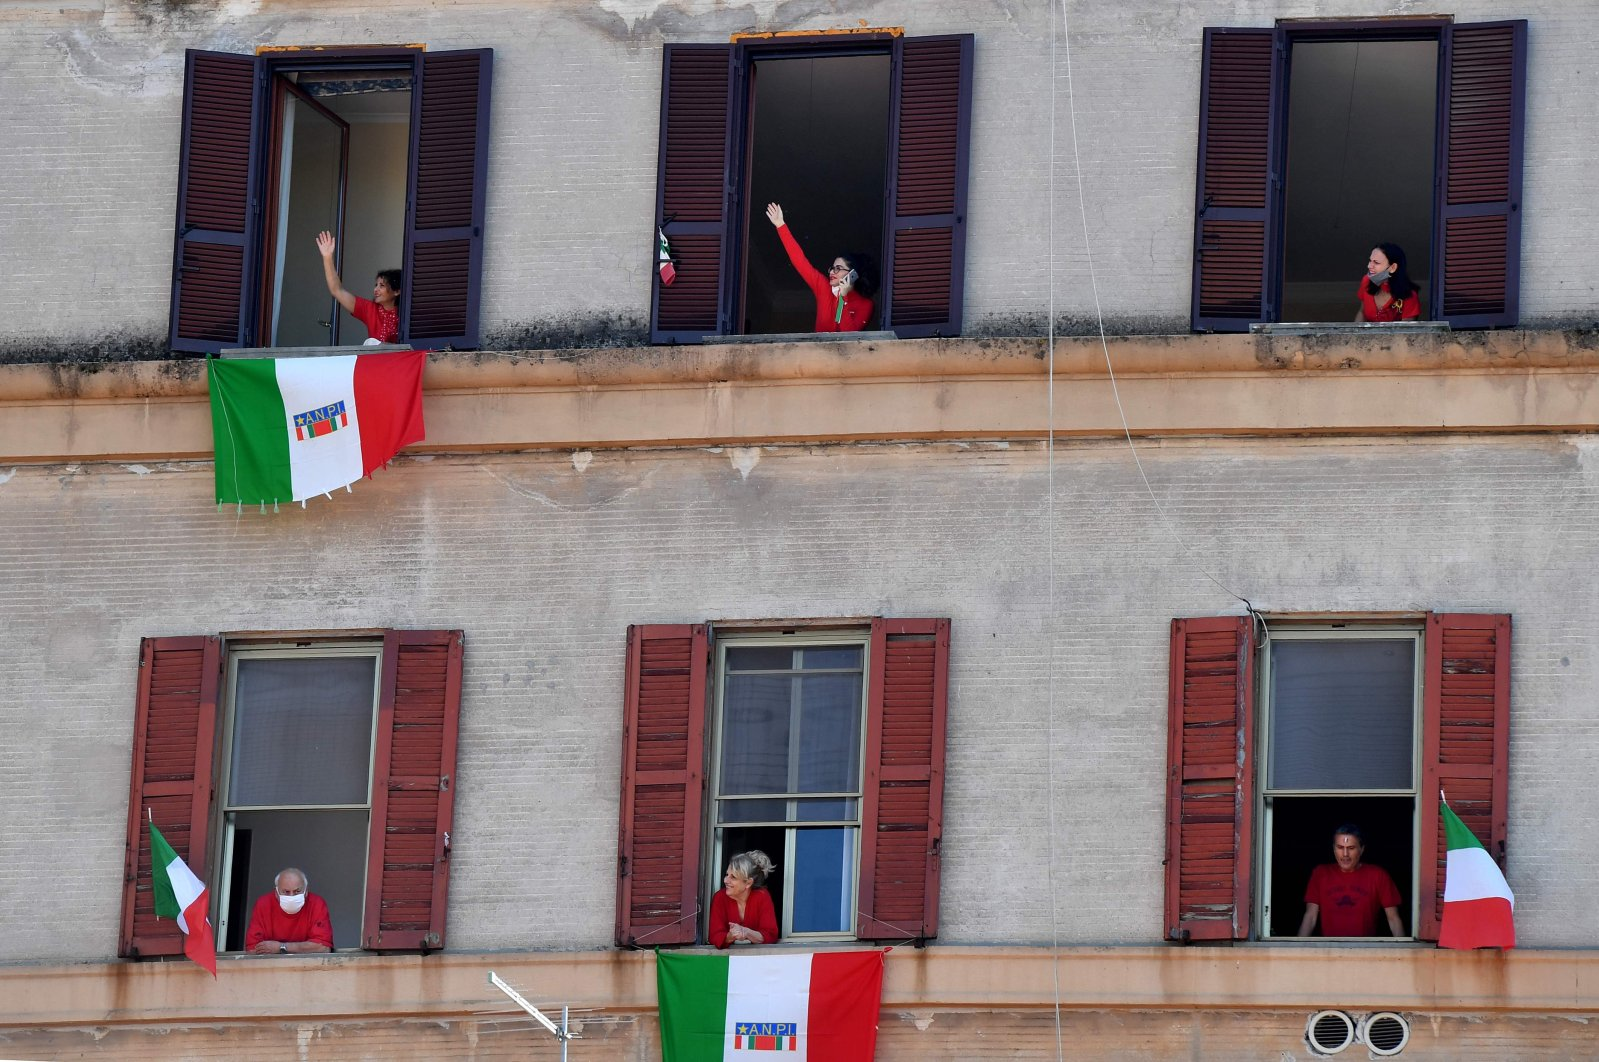 """Residents with Italian flags sing Italian partizan song """"Bella Ciao"""" in the Garbatella district of Rome, April 25, 2020. (AFP Photo)"""